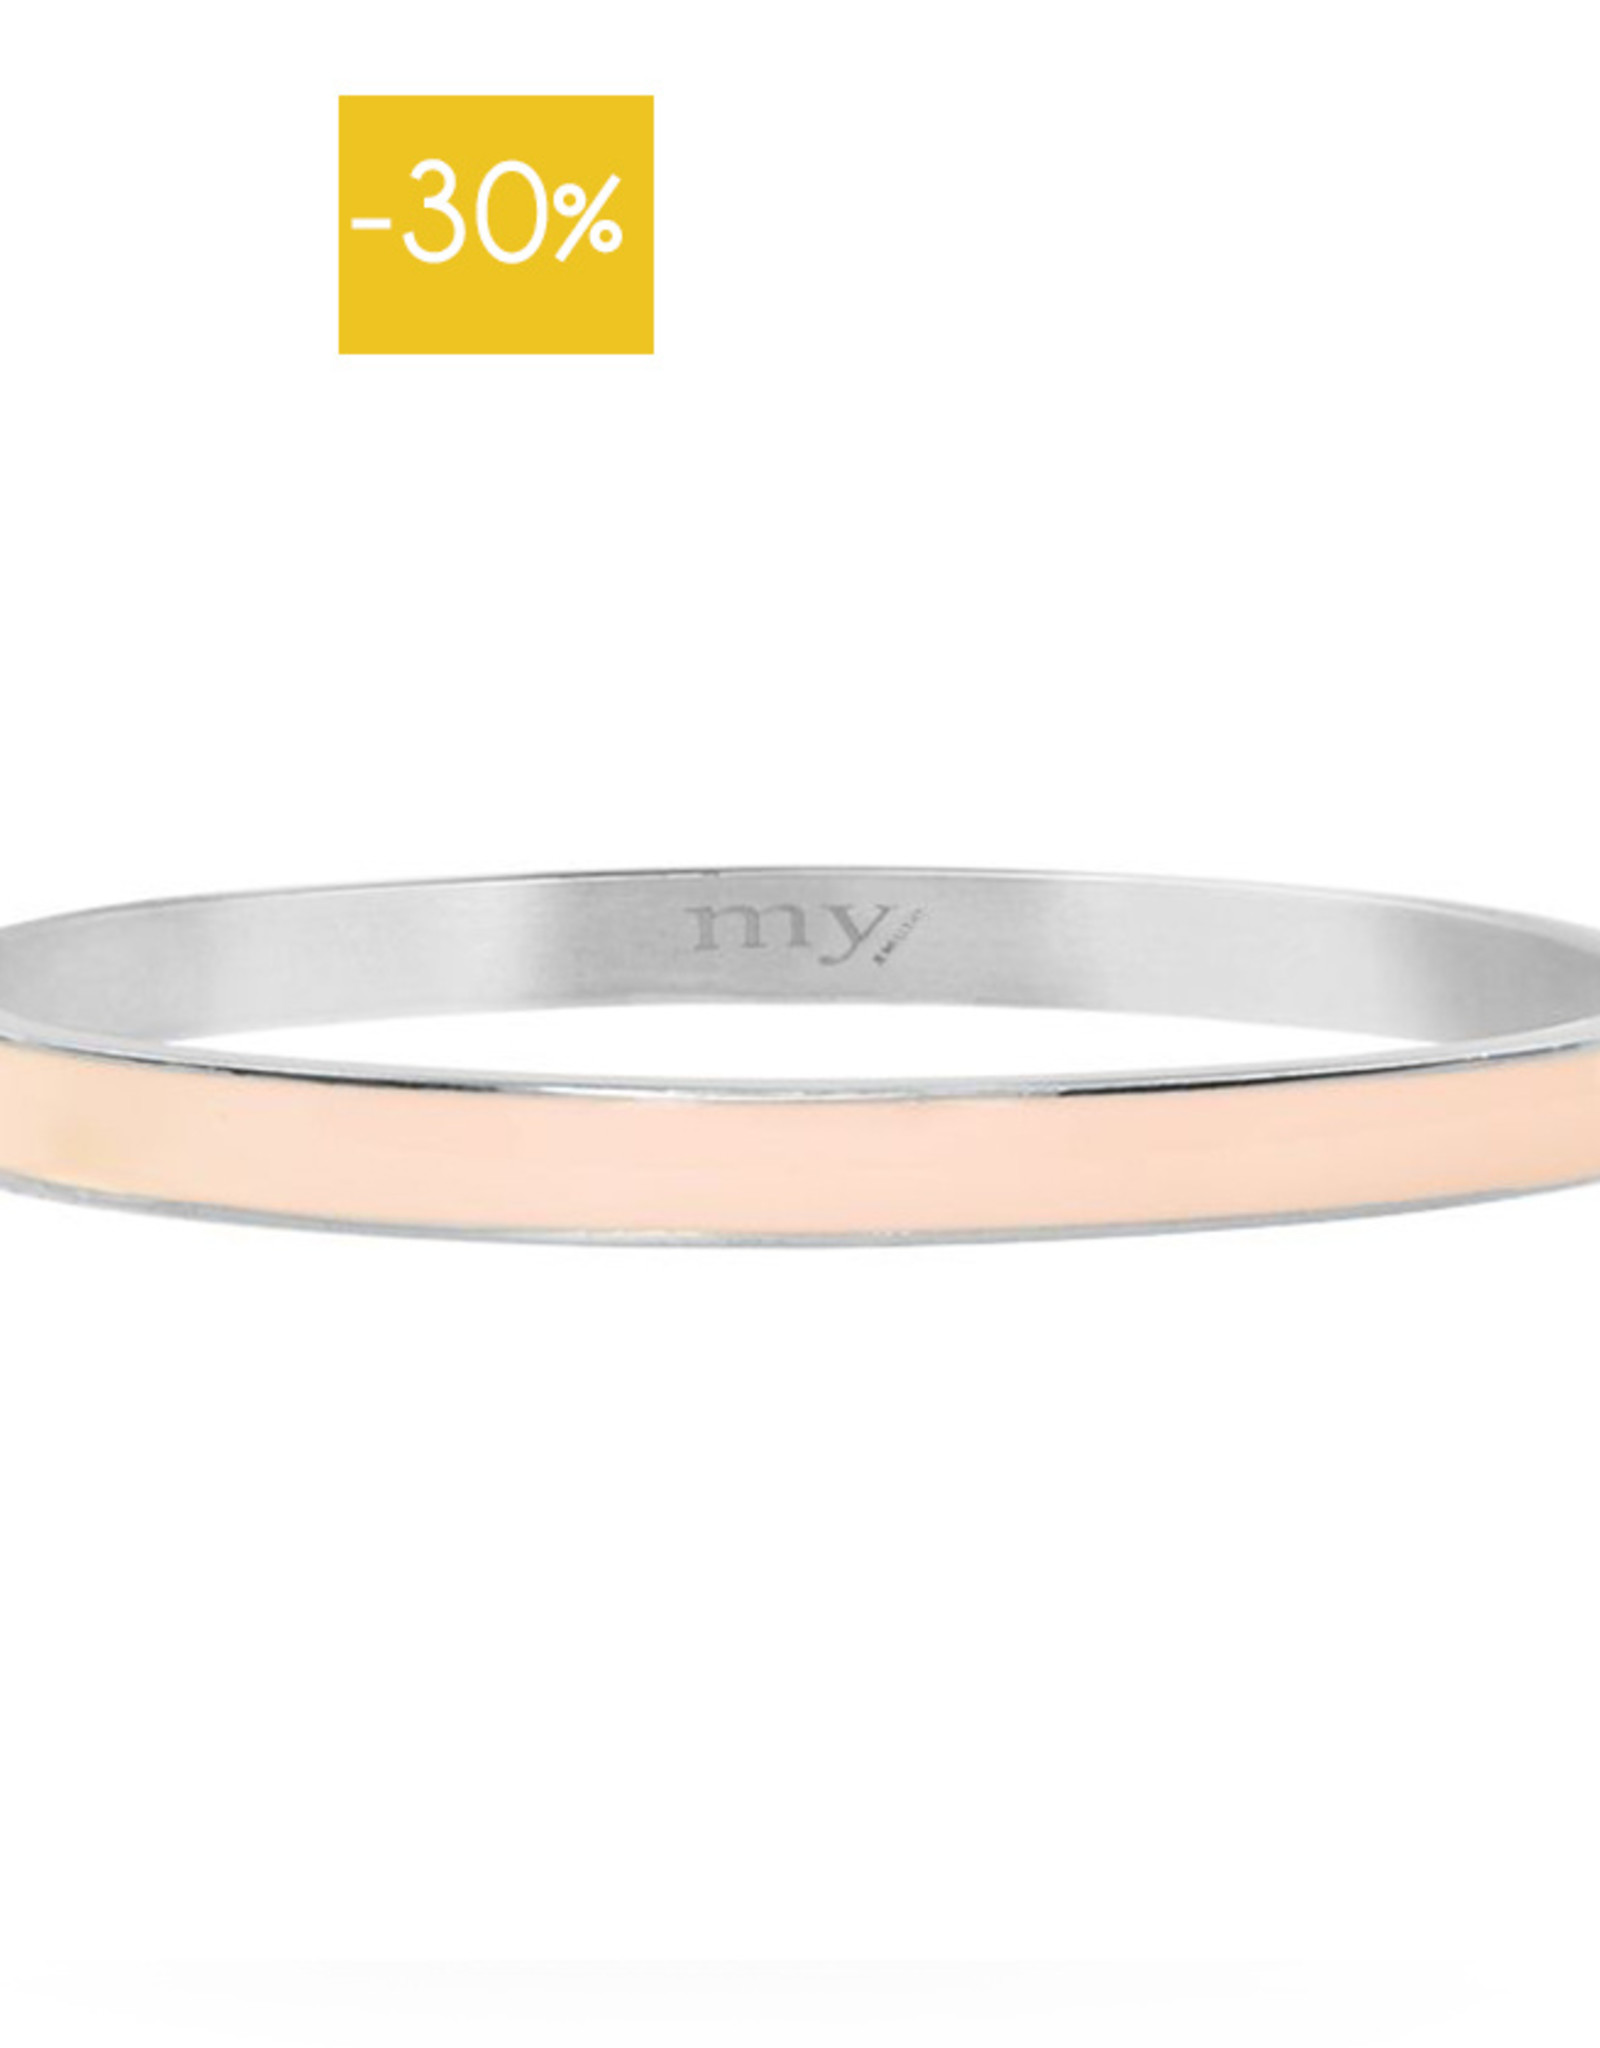 My Jewelry Bangle Summer 5mm-roze/silver